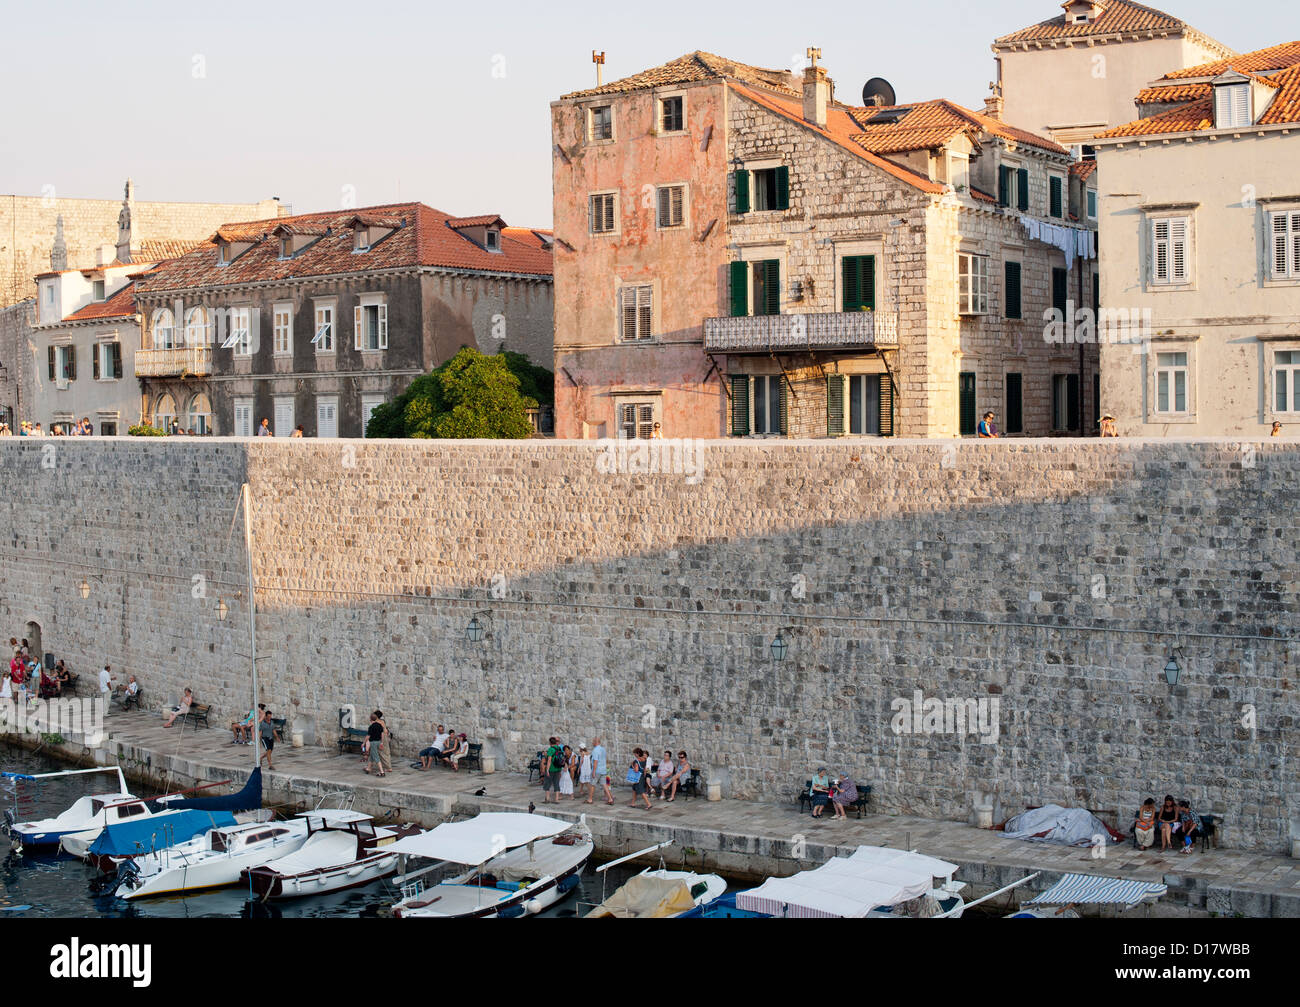 Part of the old harbour and walls of the old town of Dubrovnik on the Adriatic coast of Croatia. - Stock Image